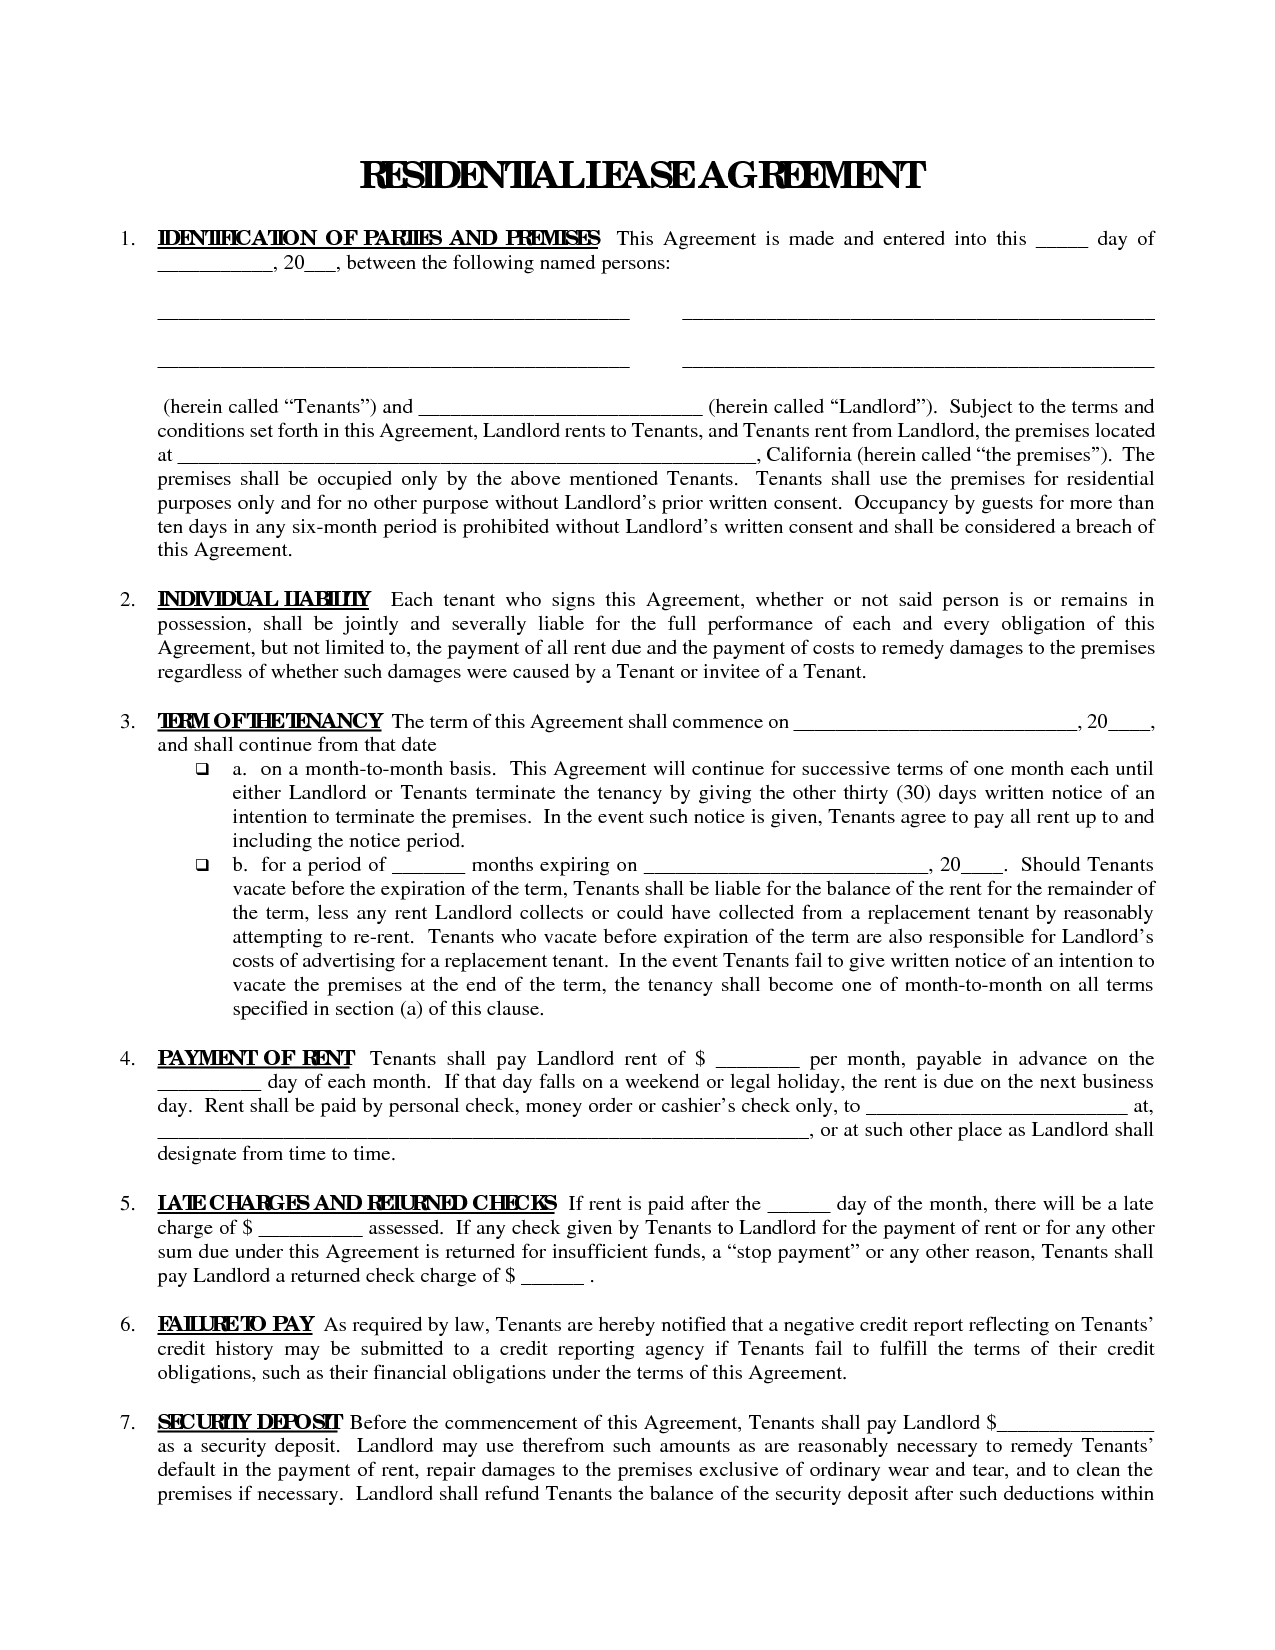 Free Business Lease Agreement Template sample task list – Simple Commercial Lease Agreement Template